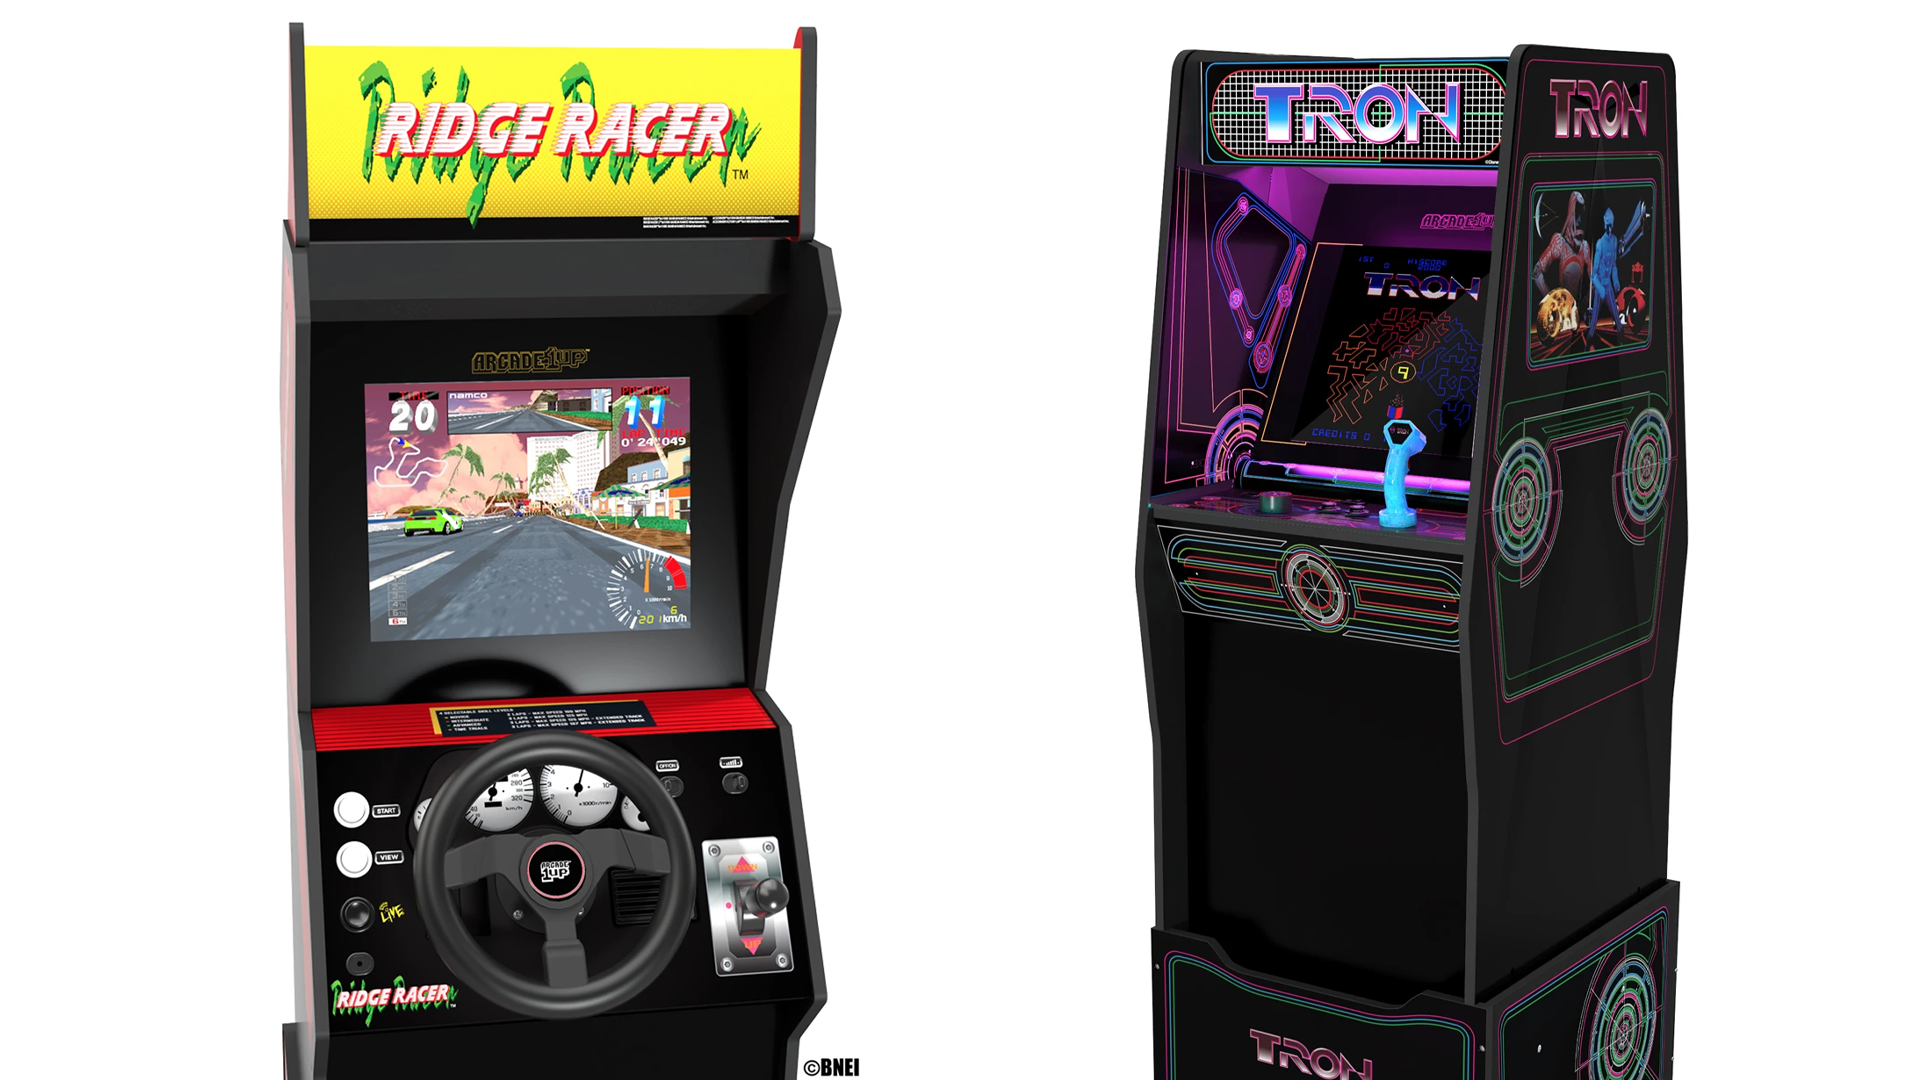 Arcade1Up Tron and Ridge Racer cabinets.